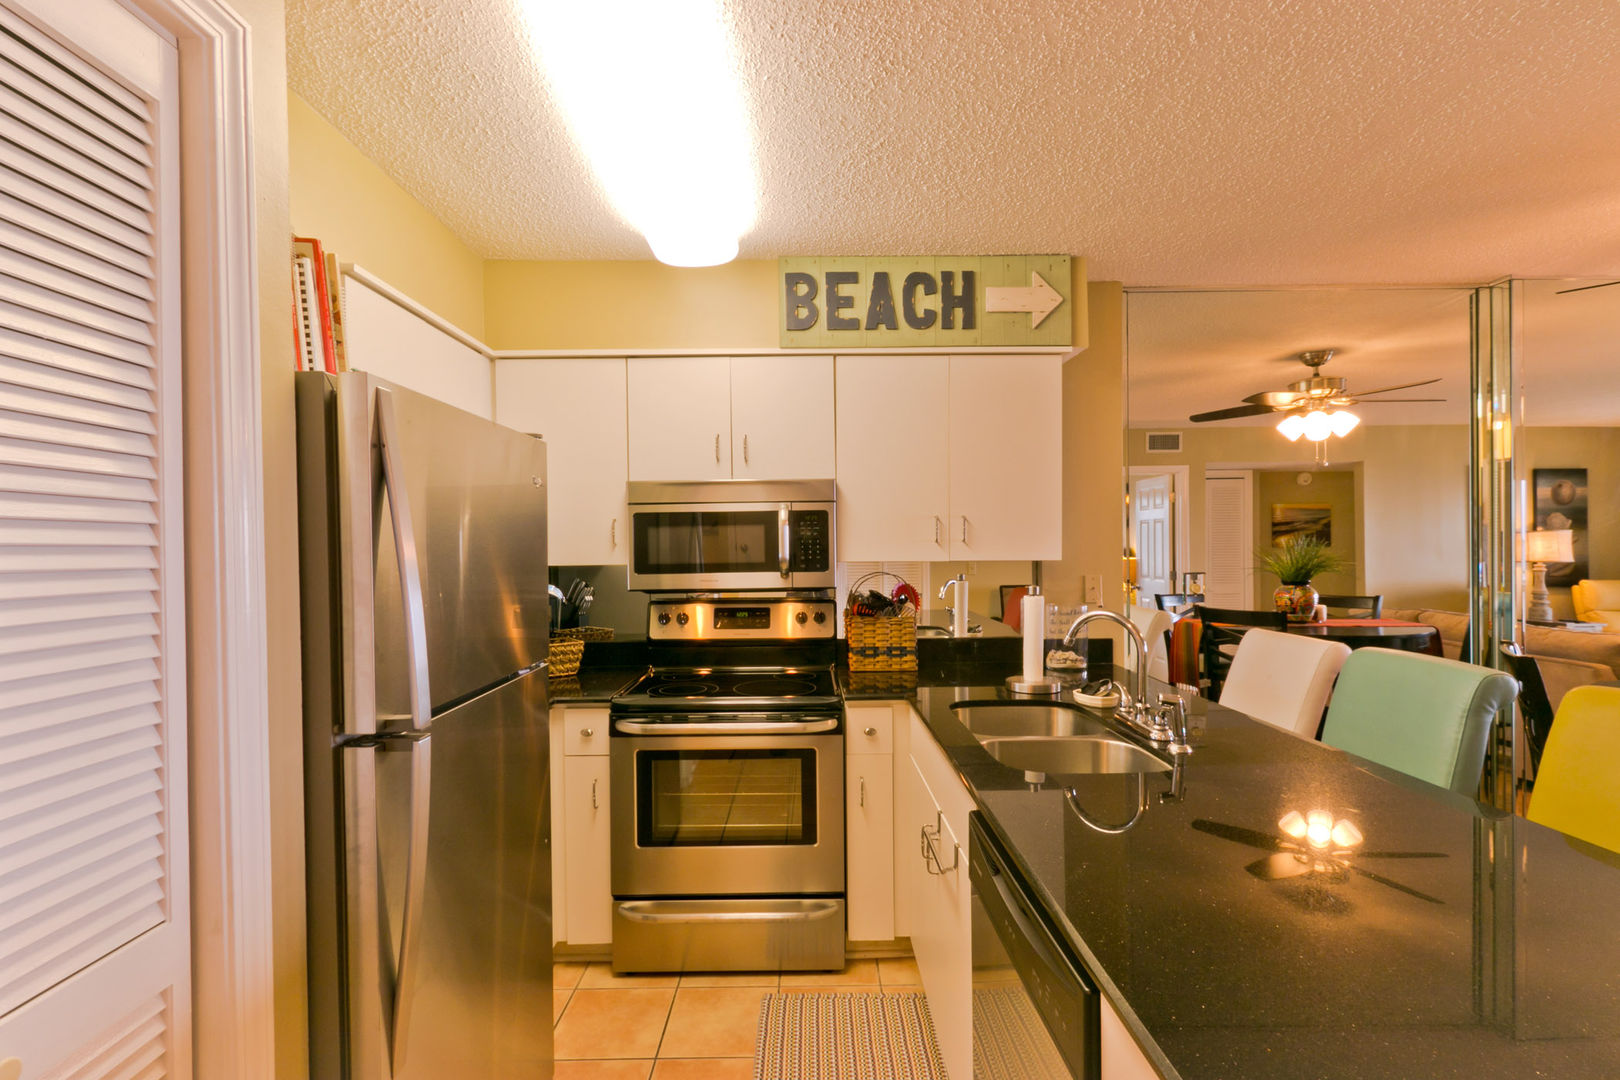 Kitchen with stainless appliances, granite, and a bar area for extra seating